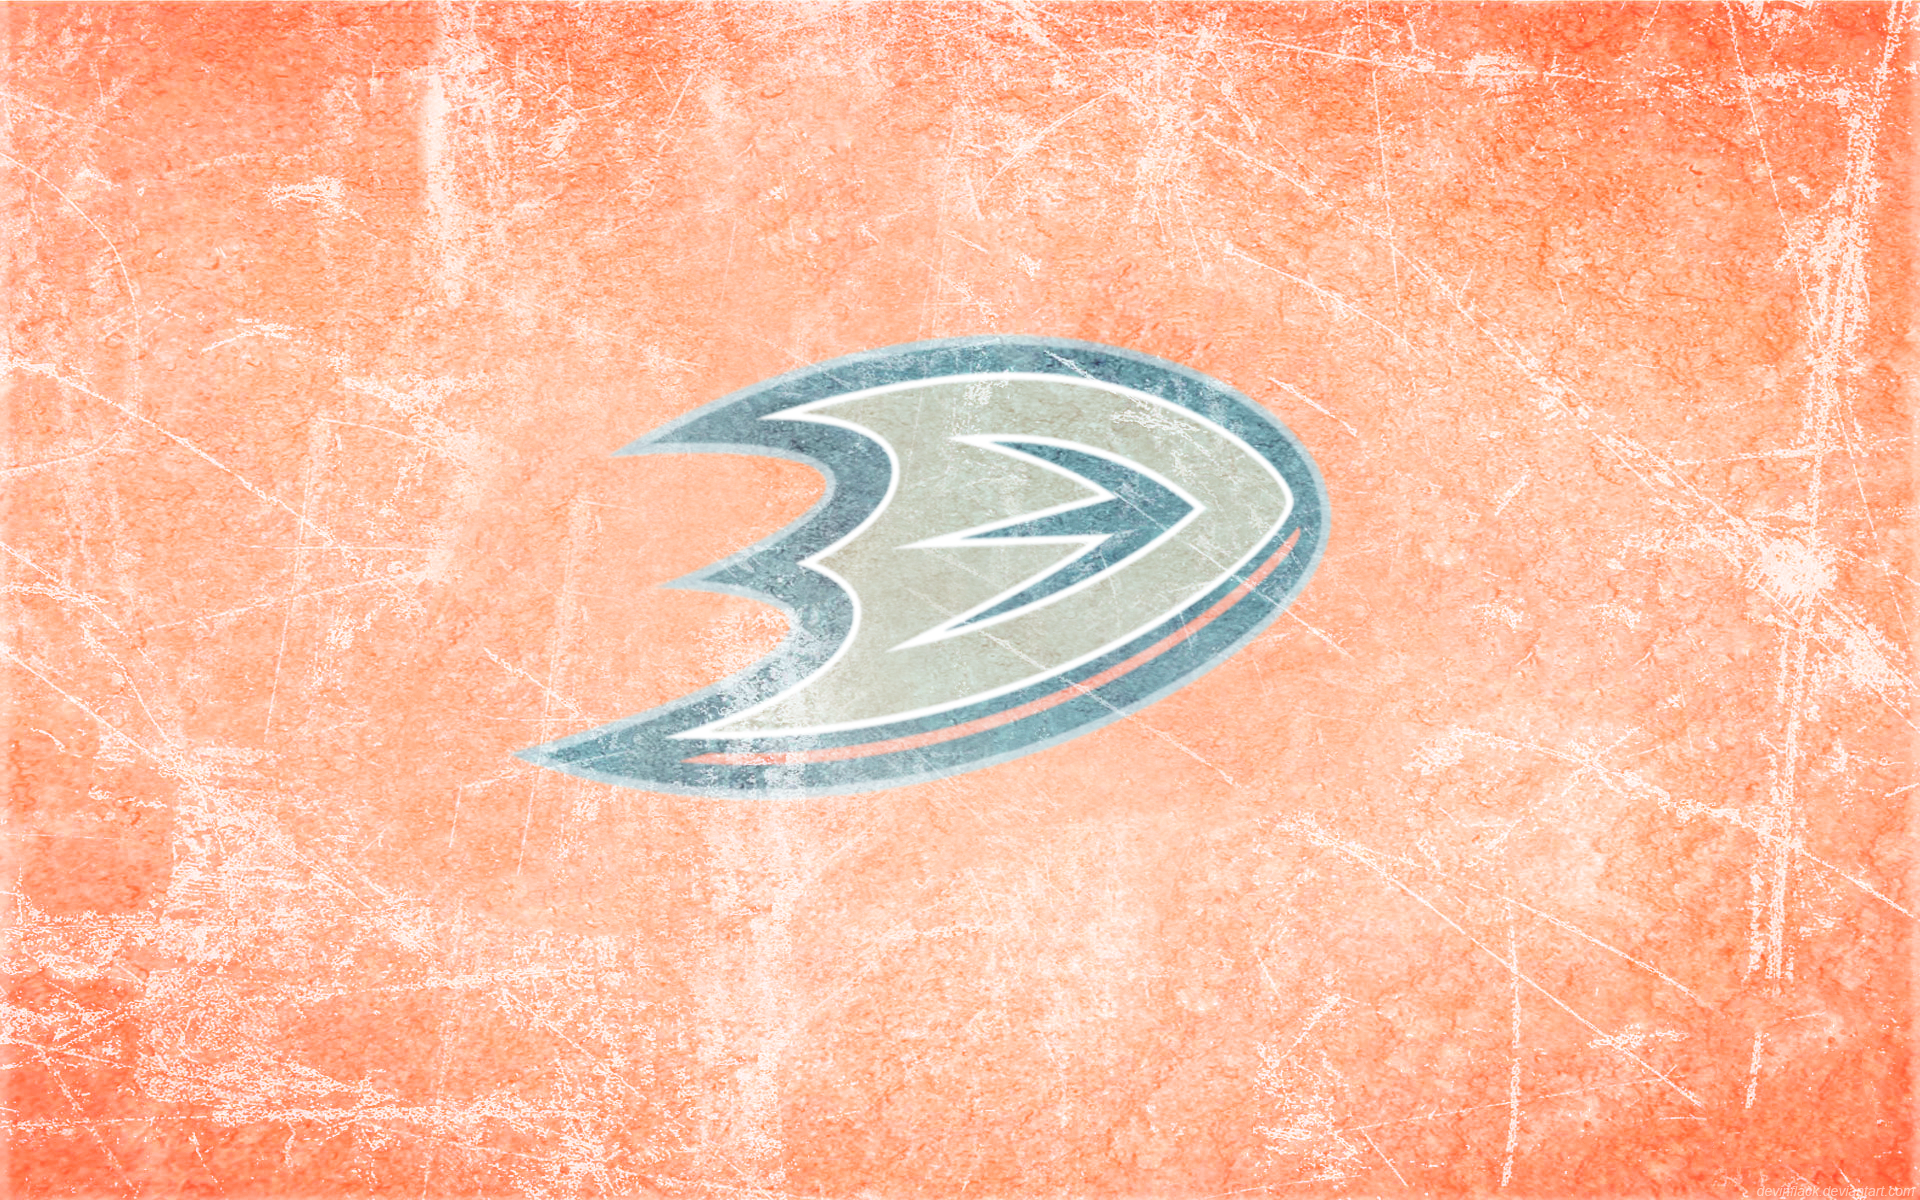 Anaheim Ducks Wallpaper